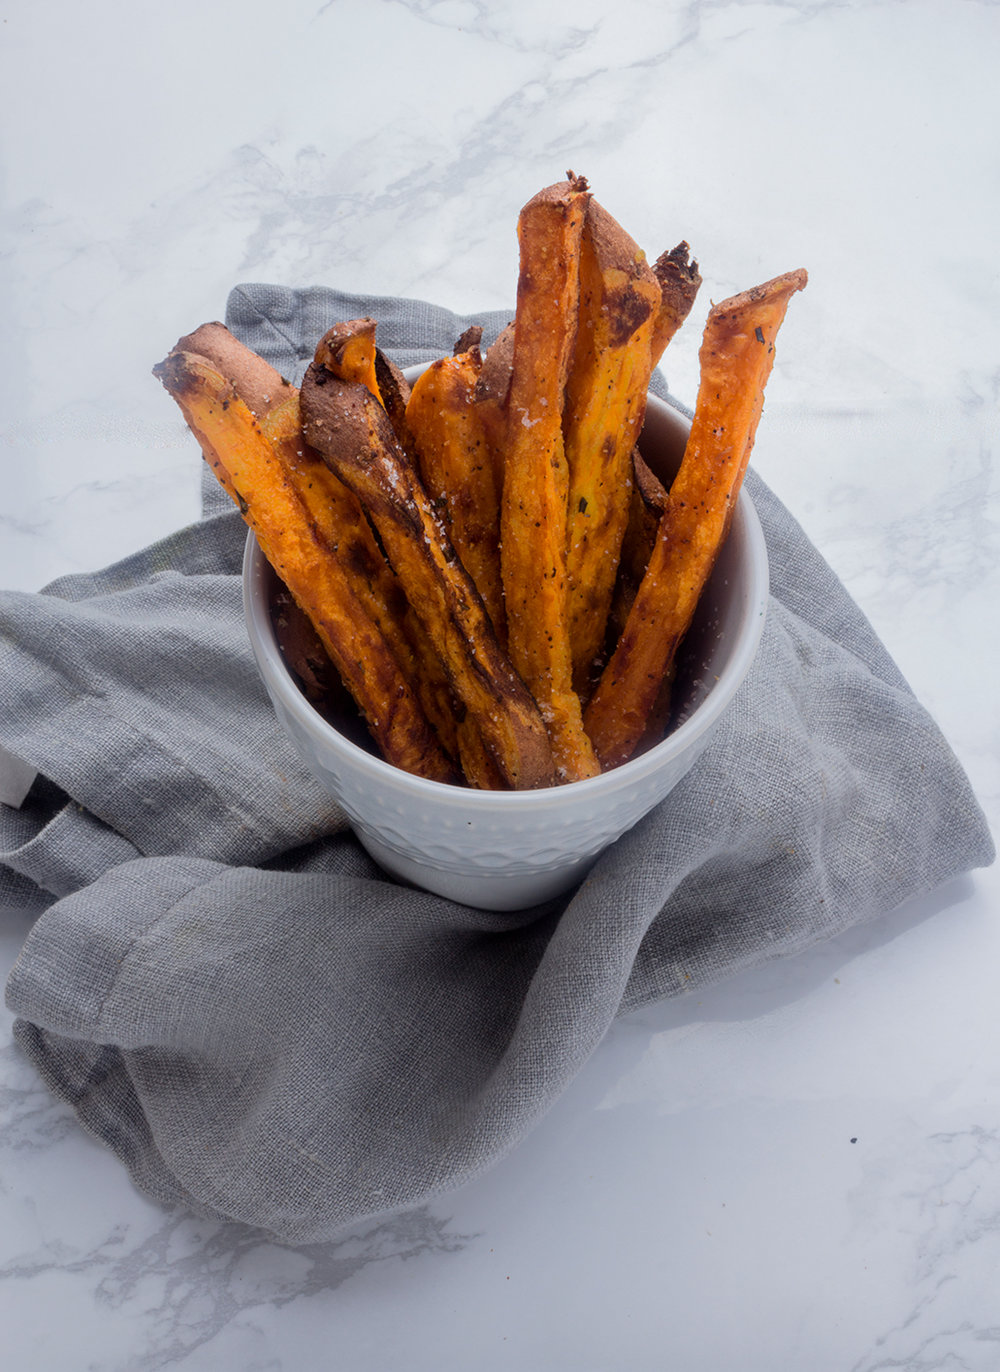 Crispy fries without frying? You bet with these Rosemary Maple Sweet Potato Fries.